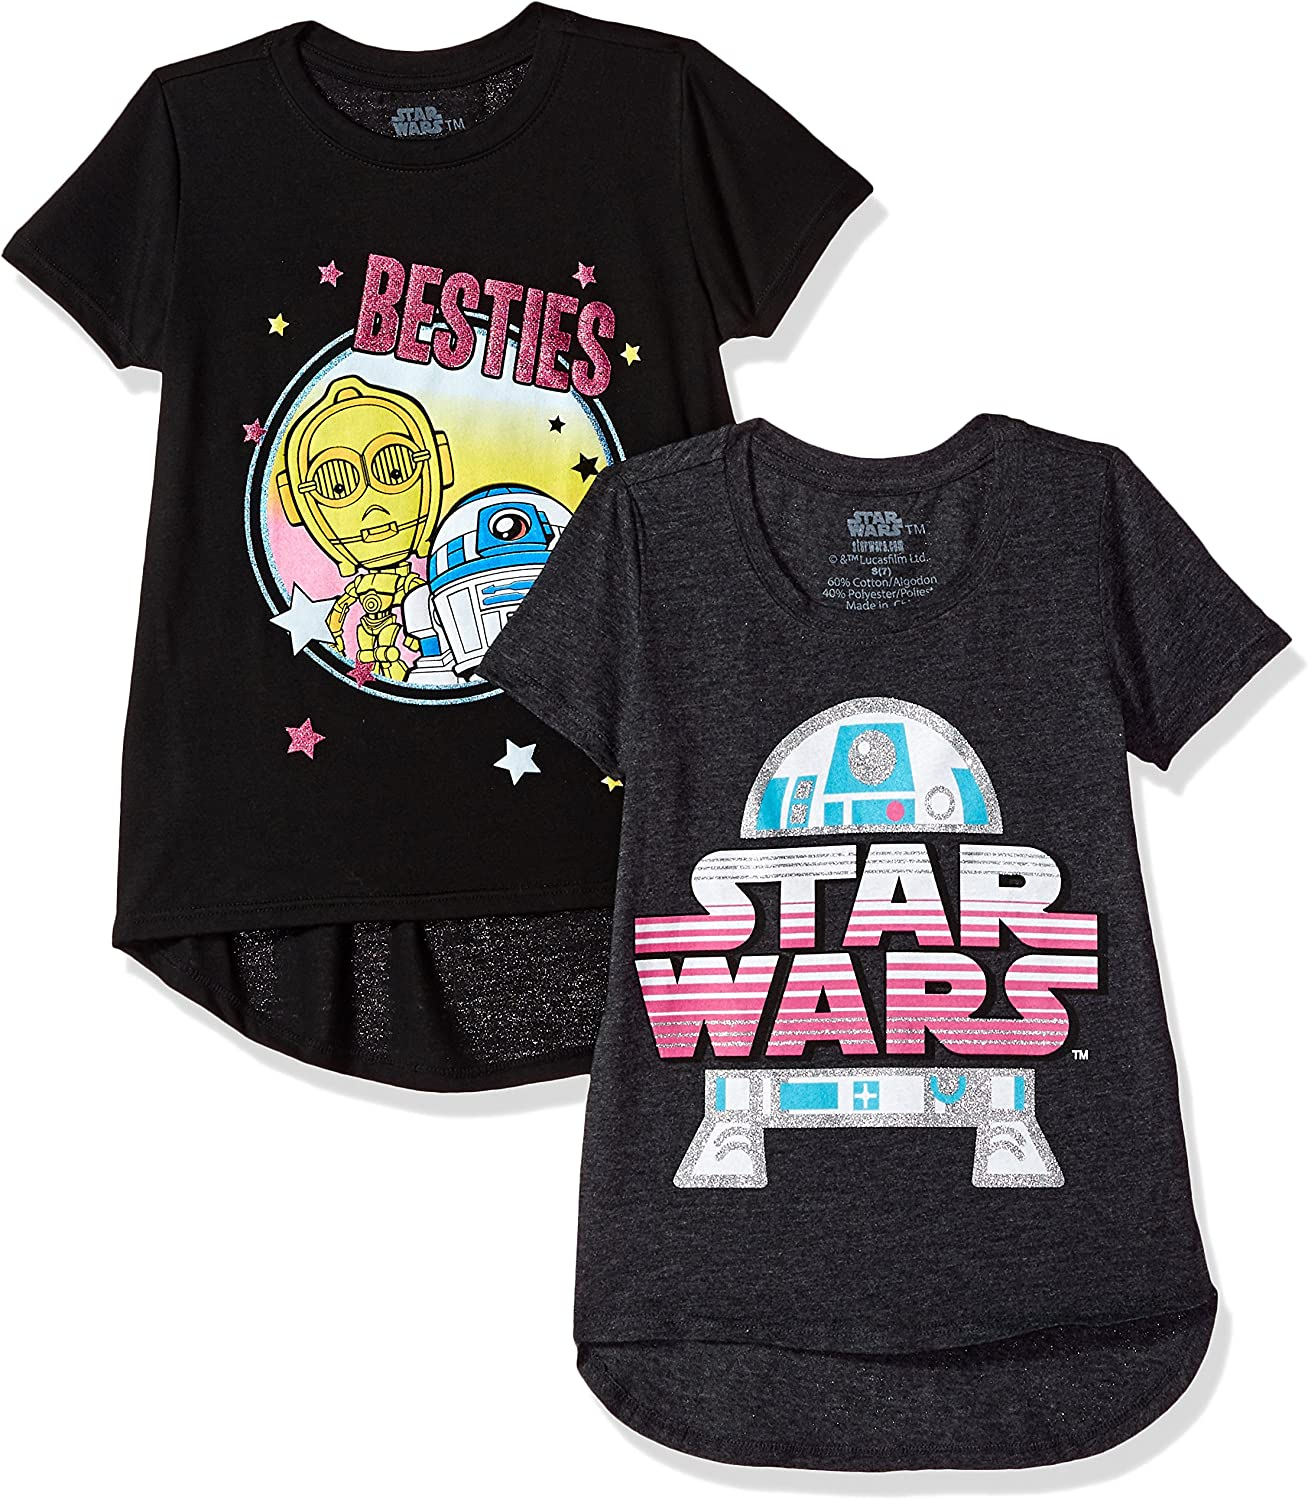 Spotted Zebra Toddler Girls Star Wars 4-Pack Short-Sleeve T-Shirts